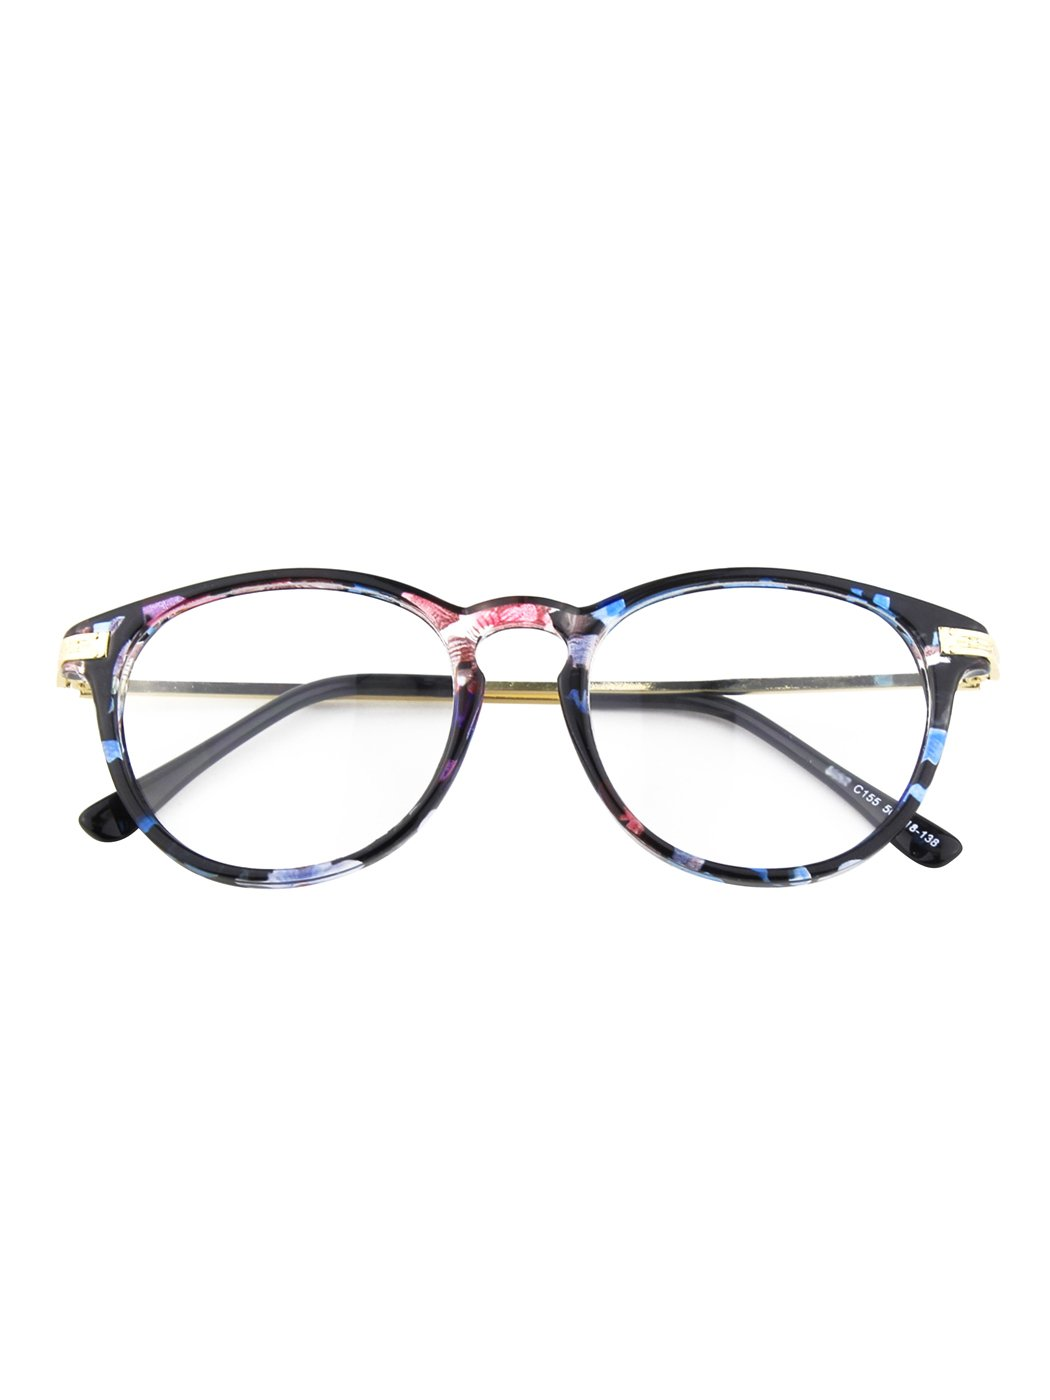 Happy Store CN92 Fashion Keyhole Metal Temple Oval Horn Rimmed Clear Lens Glasses